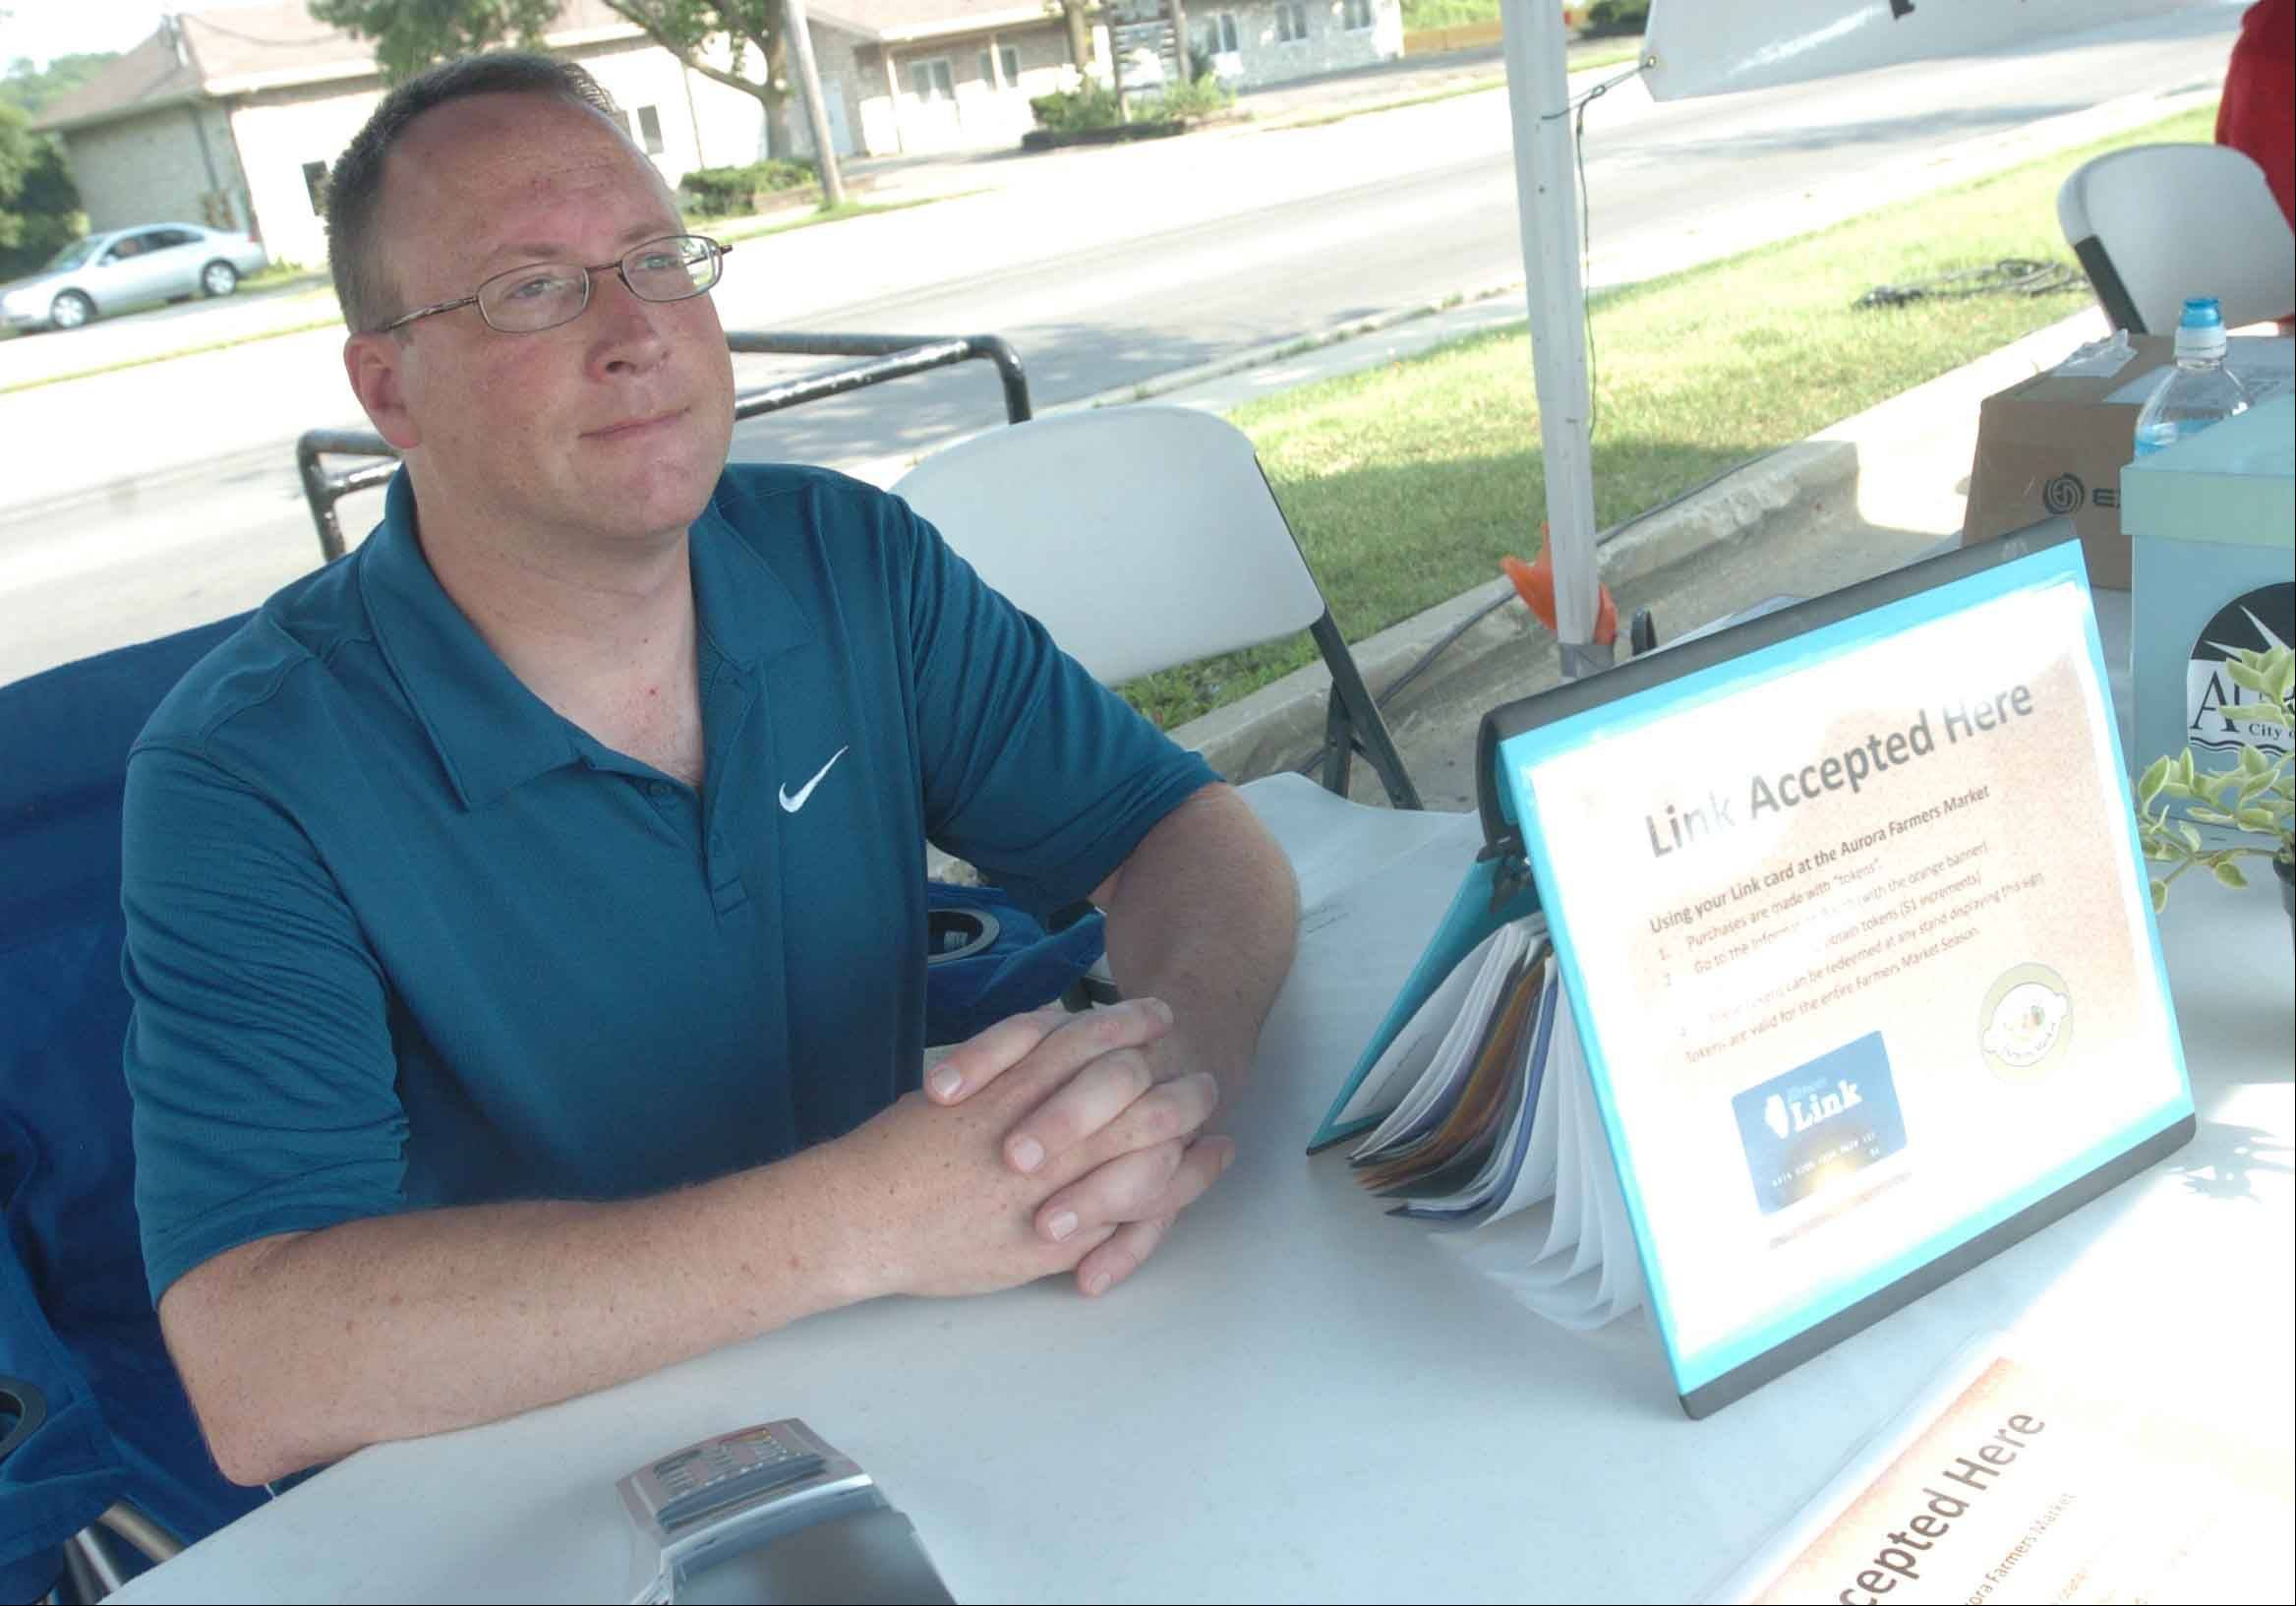 Volunteer Phil Supel of Aurora waits for people who want to use their Link cards to get tokens to allow them to buy food at the Aurora Farmers Market.